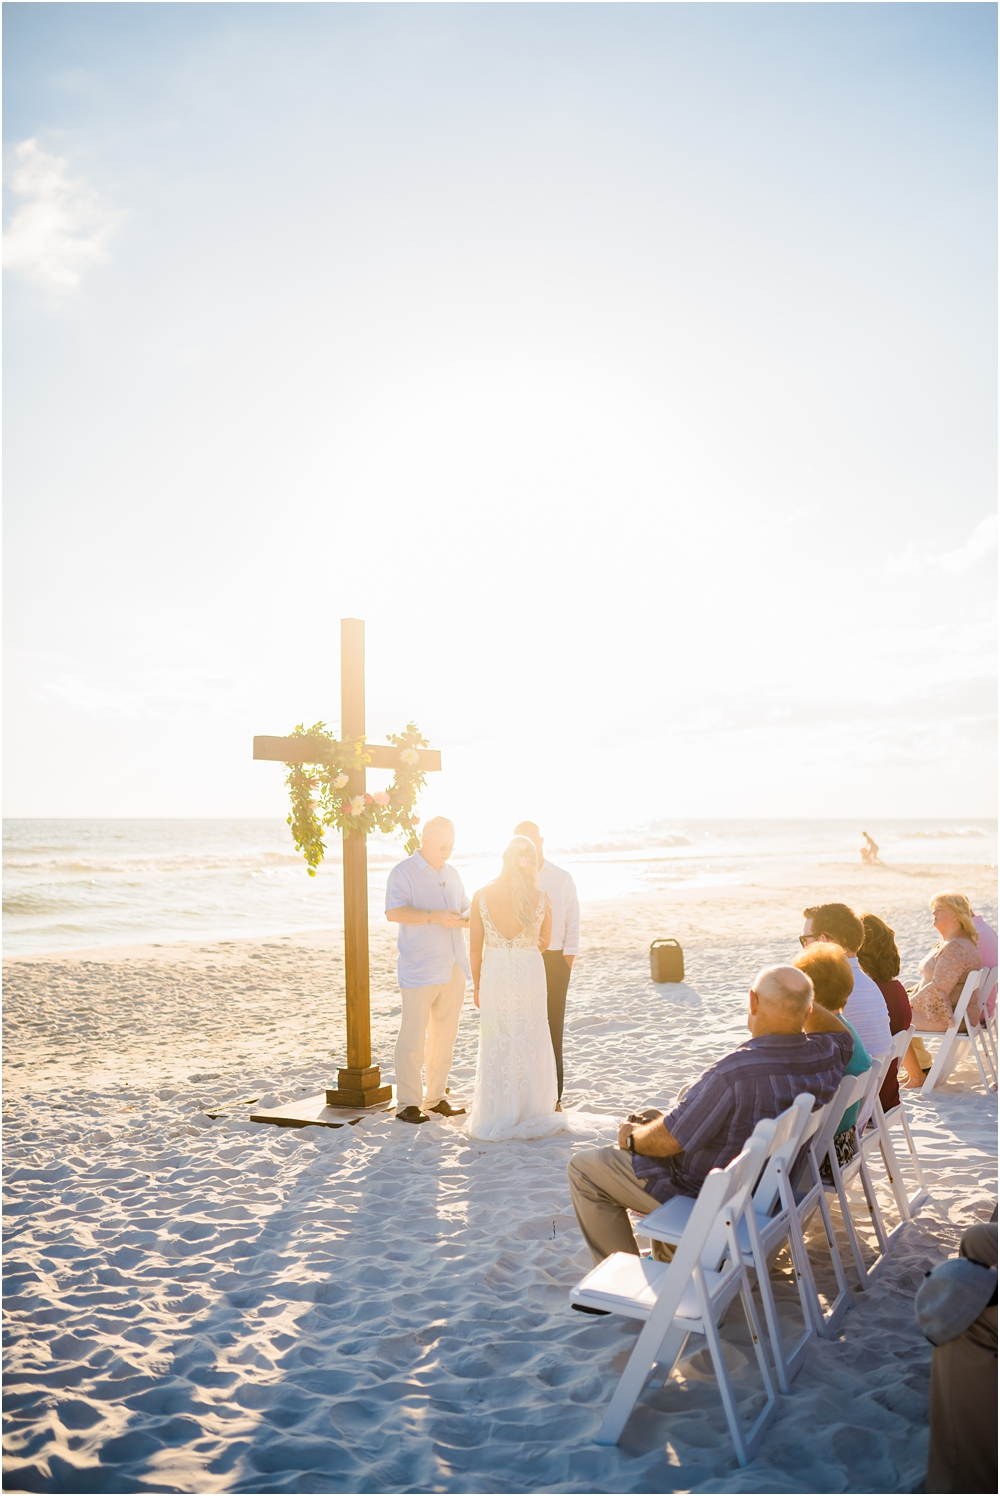 mcglothlin-wedding-kiersten-stevenson-photography-30a-panama-city-beach-dothan-tallahassee-(84-of-145).jpg